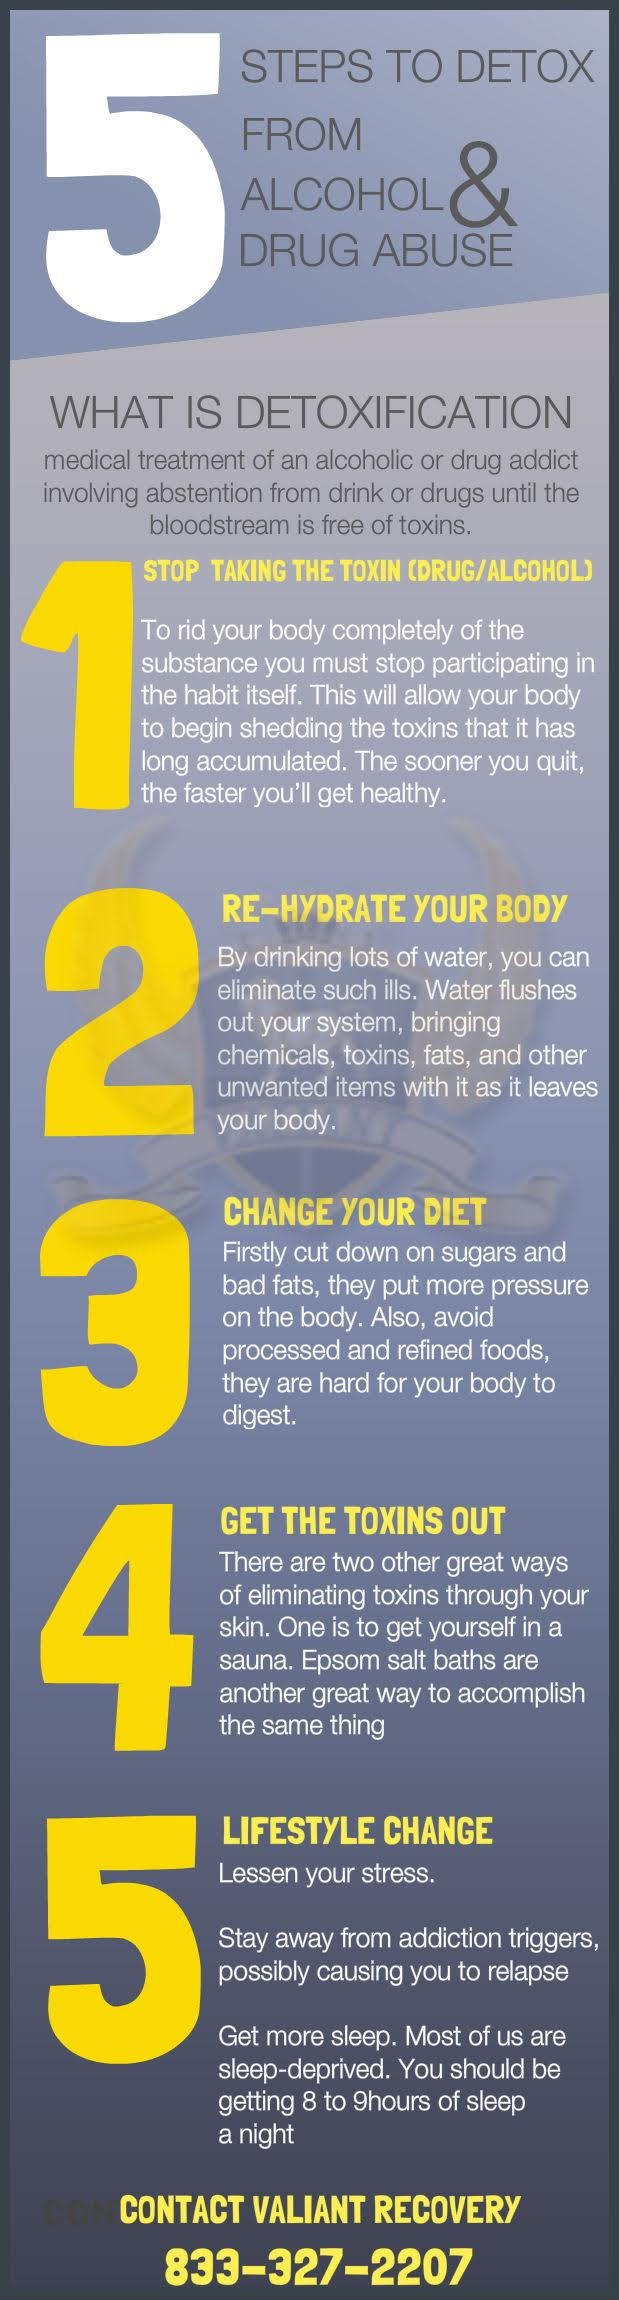 5 Steps to Detox from Drugs or Alcohol -  InfoGraphic